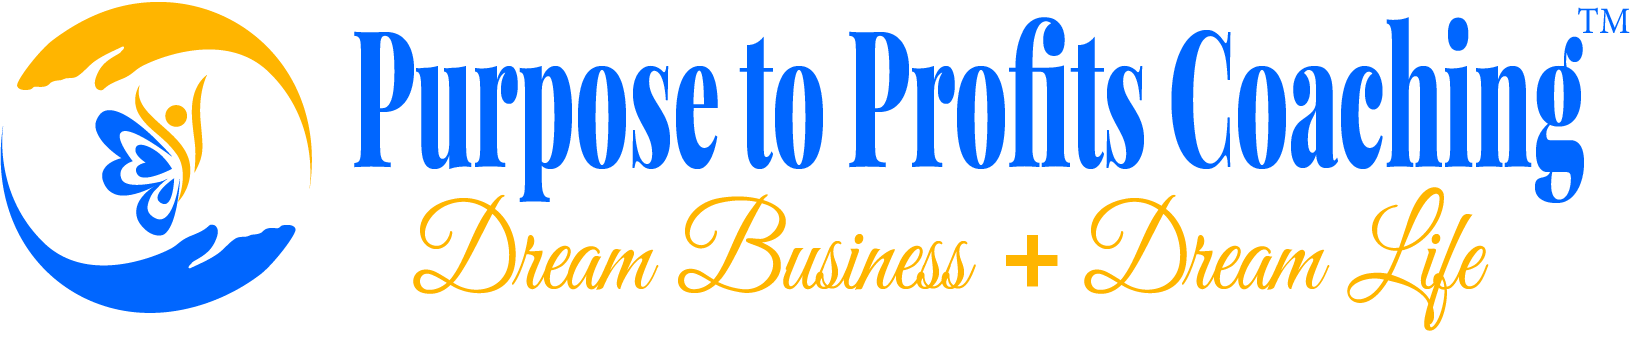 Purpose to Profits Coaching: Quantum Leap Your Biz to 6 Figures+